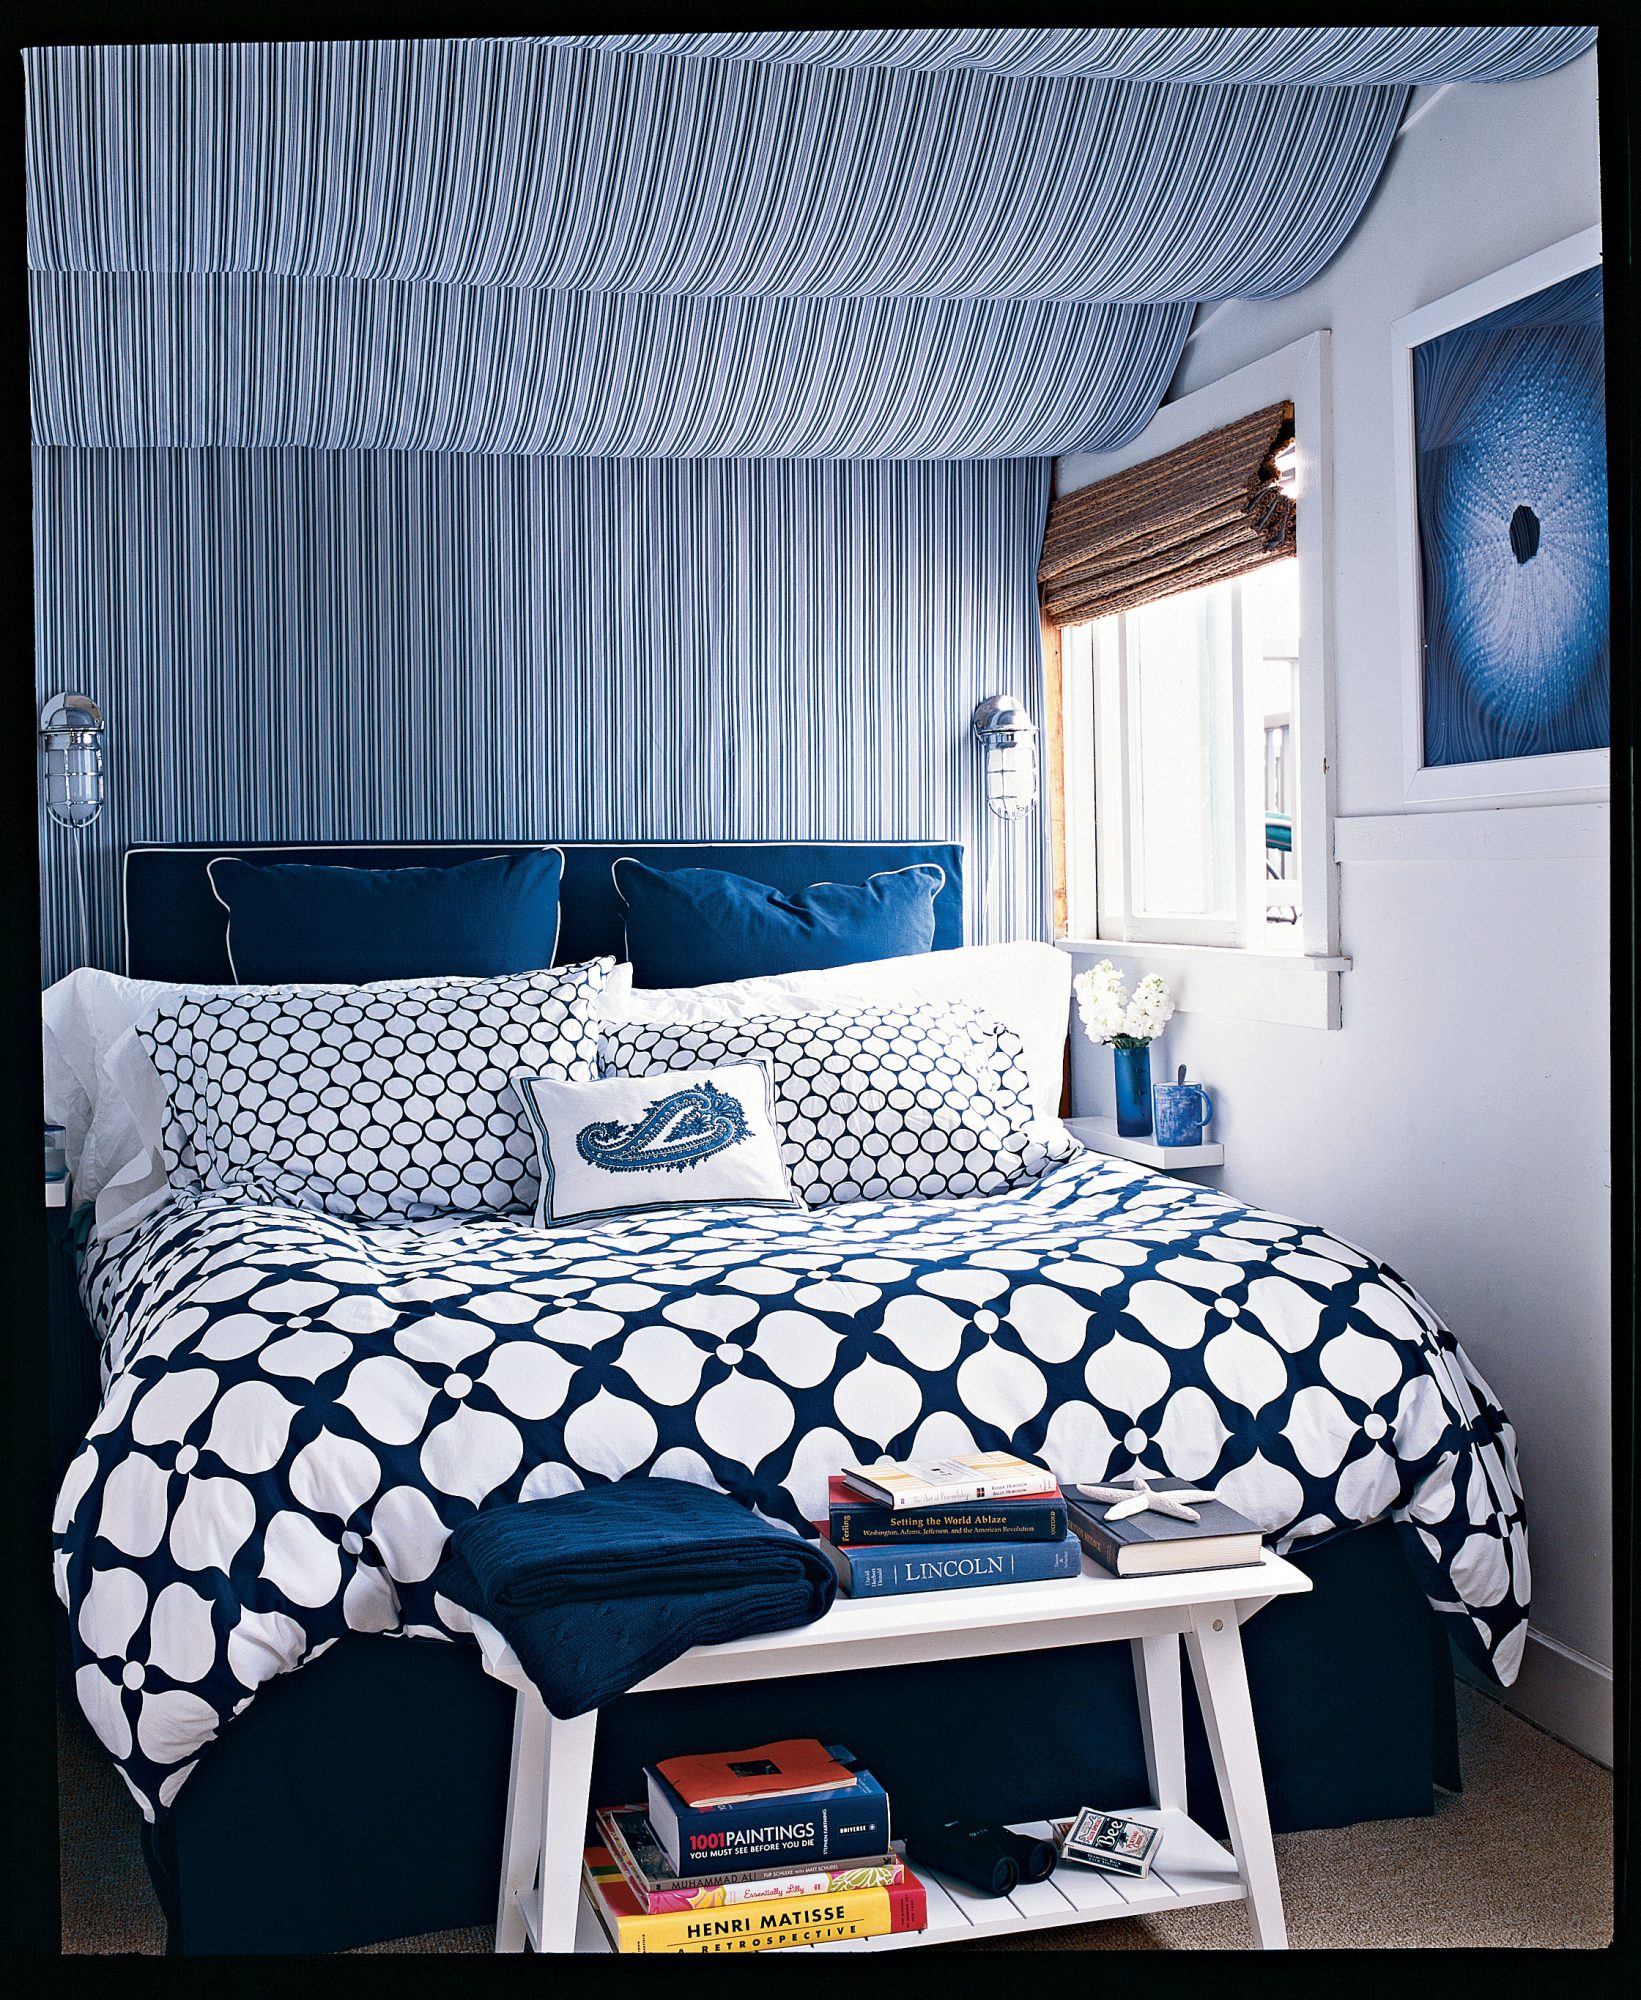 This teeny bedroom leaves just enough room for the bed and bench, but it seems so much larger thanks to its diverse mix of patterns and prints. You can put stripes with spots—and add much-needed dimension—as long as you simplify your palette.